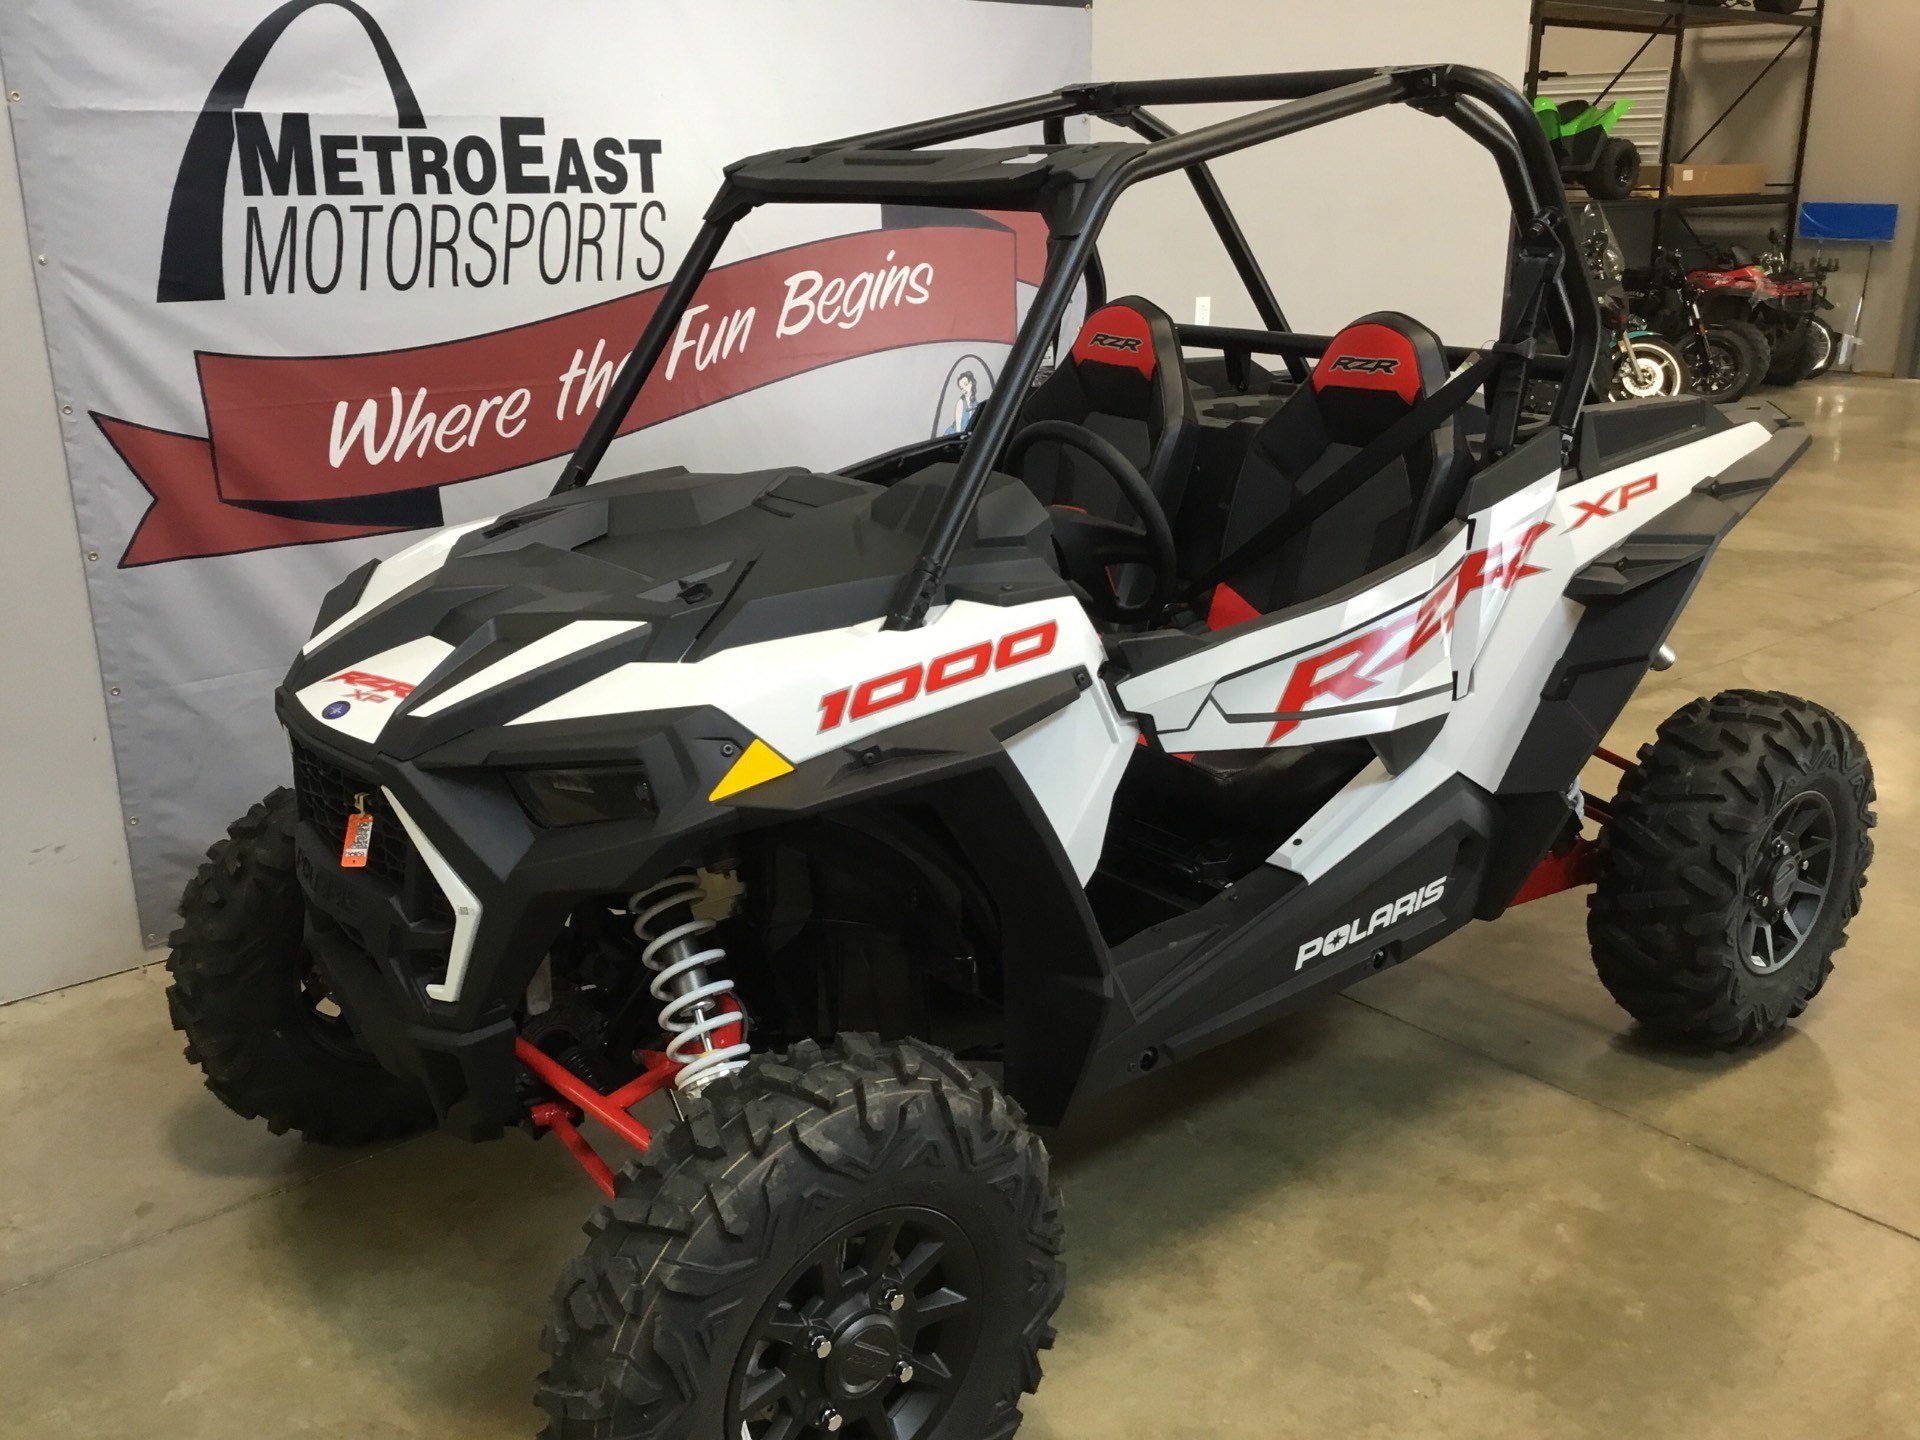 2020 Polaris RZR XP 1000 in O Fallon, Illinois - Photo 2